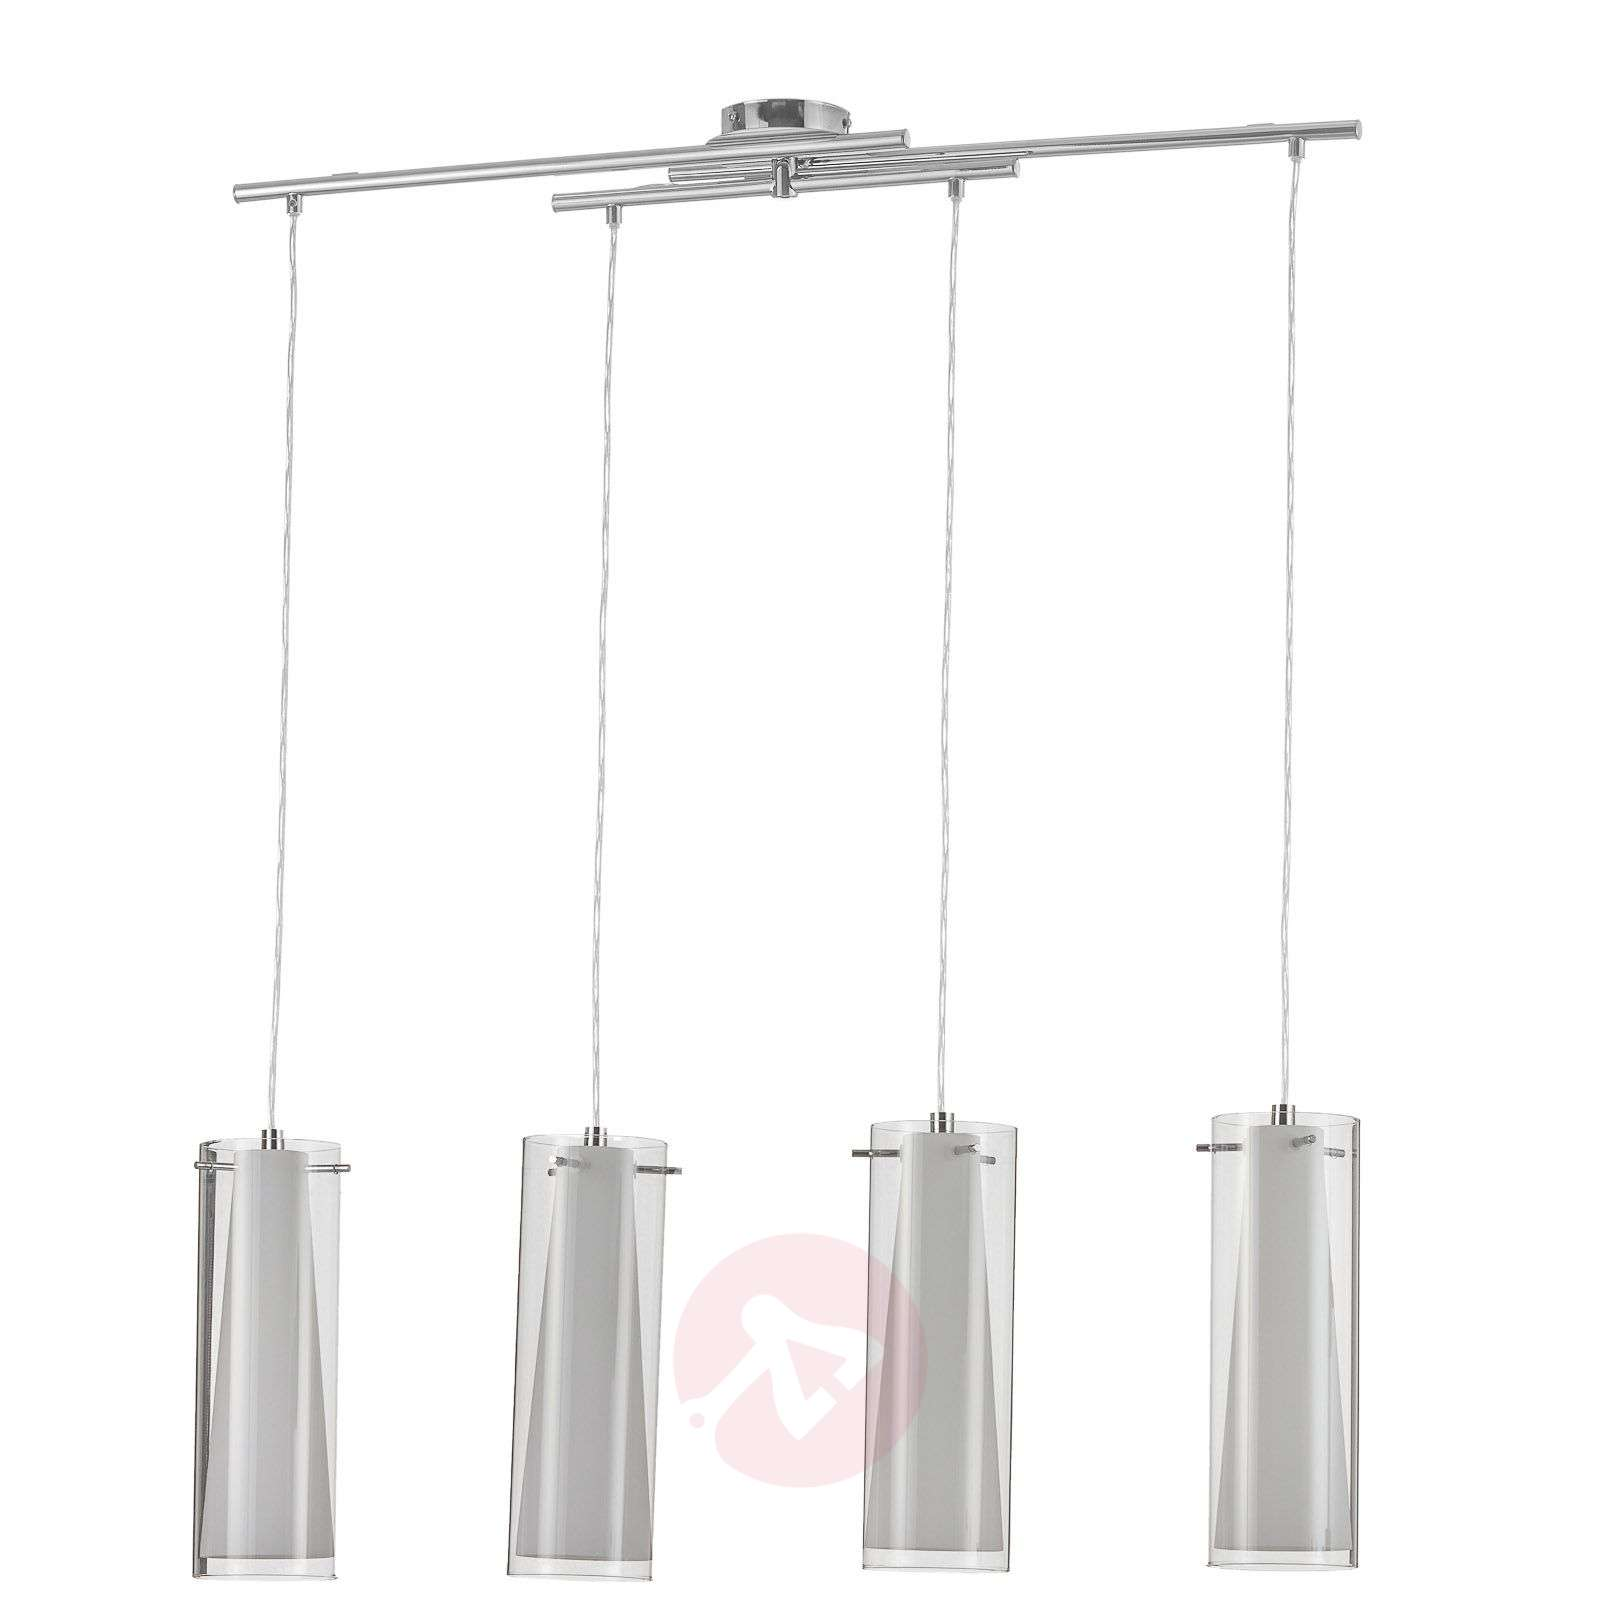 PINTO Variable Dining Room Lamp, 4 Lamp-3031415-01